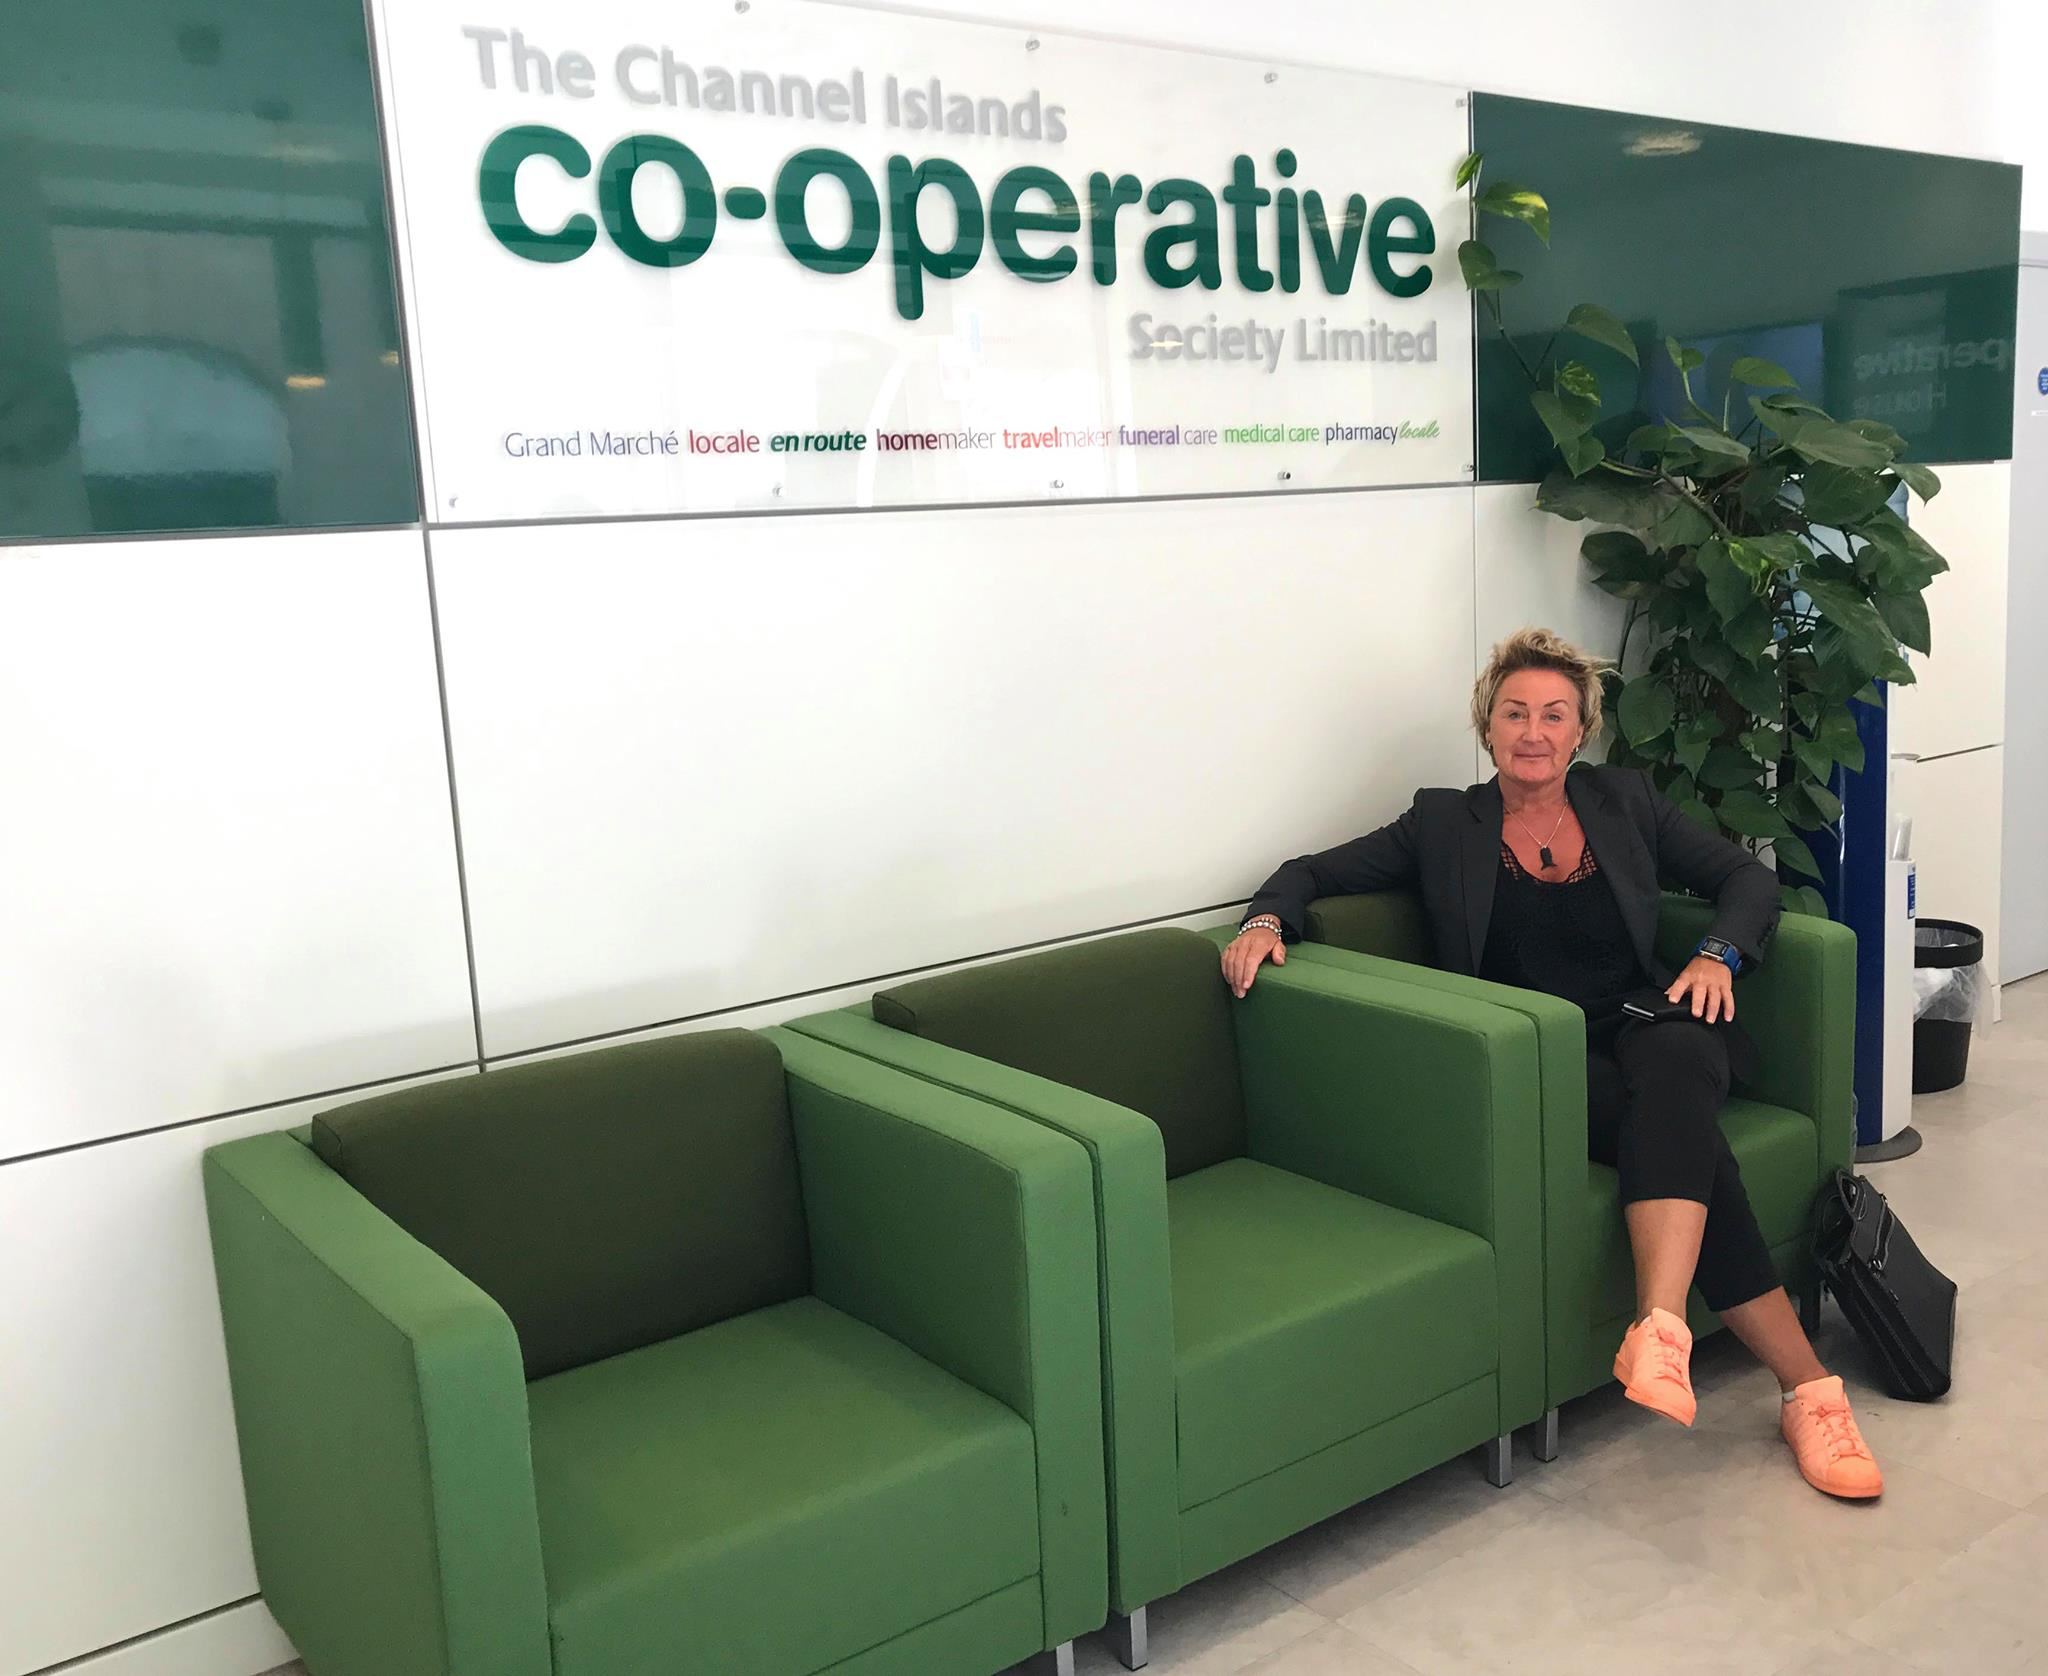 The Green Laundry Room's New Partnership With The Channel Islands Co-Operative/Local